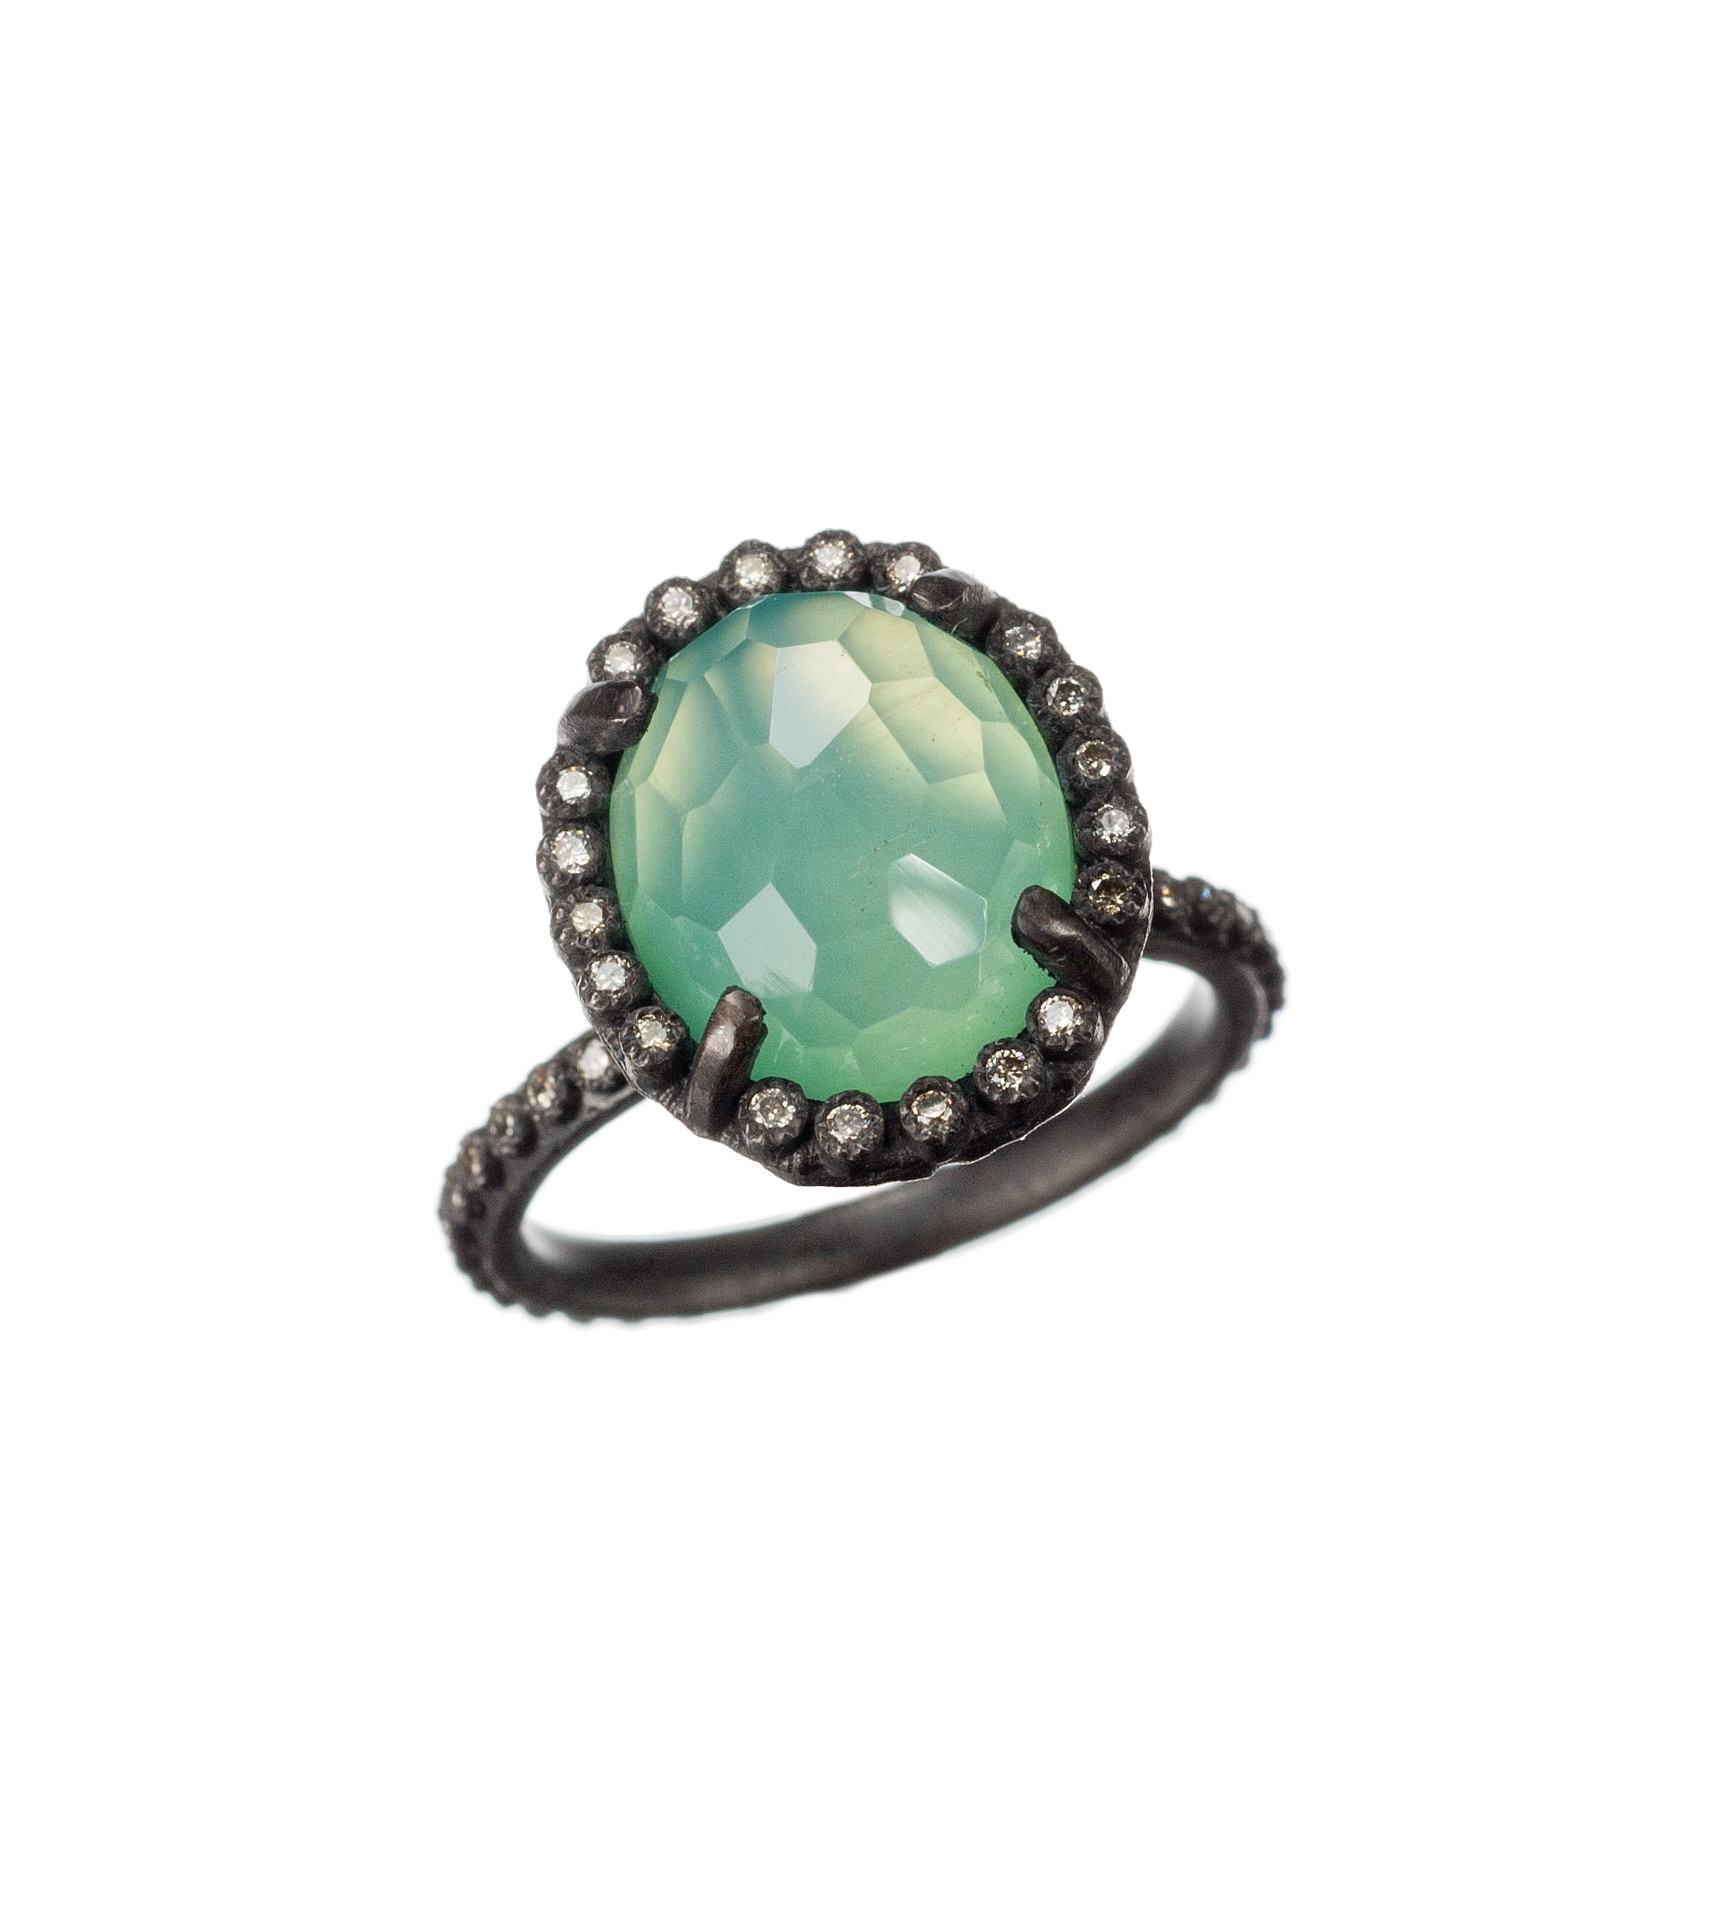 Chrysoprase and quartz doublet ring